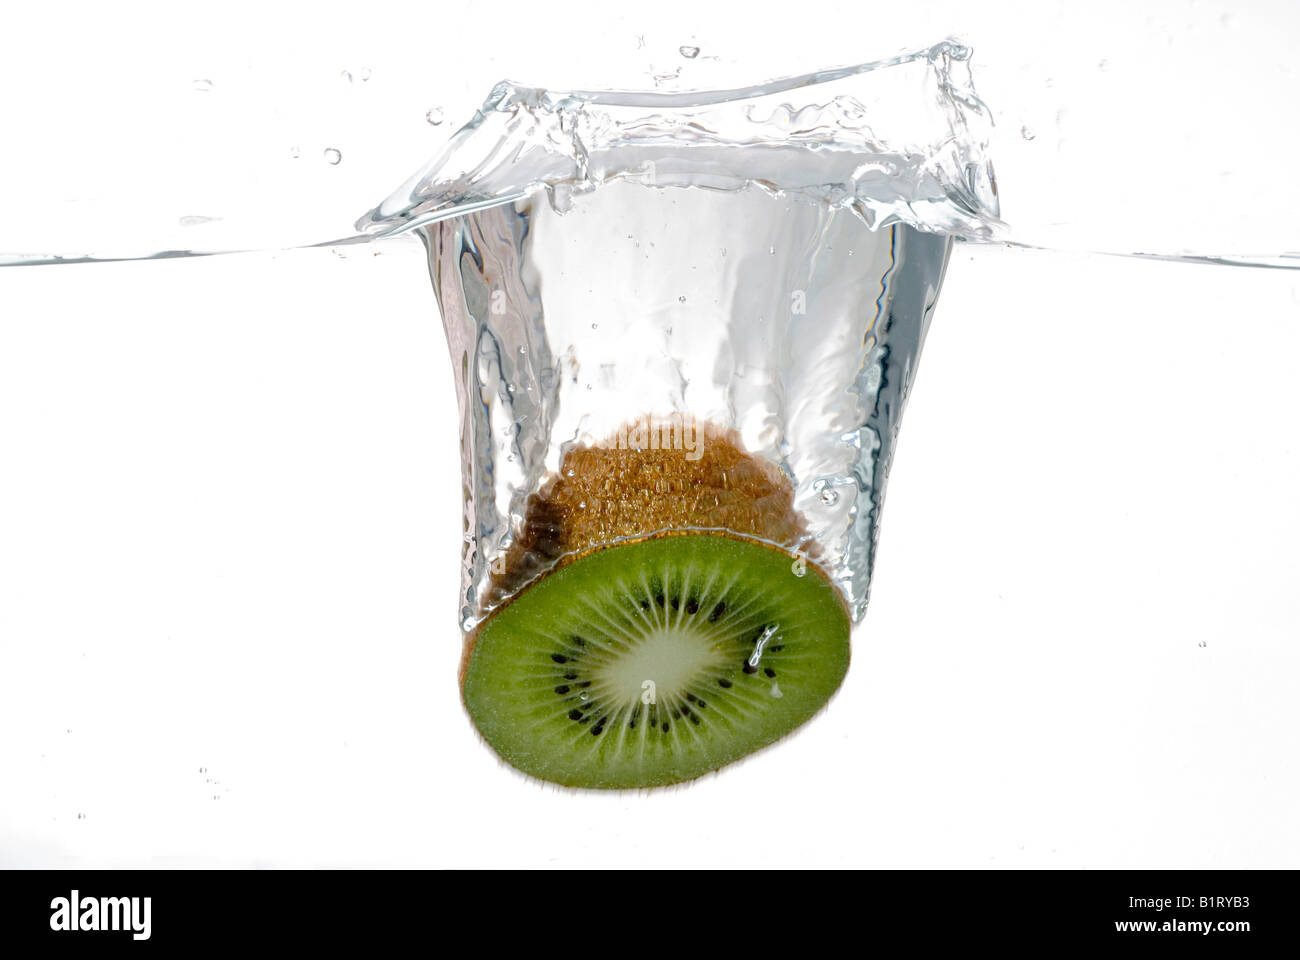 Half a kiwi plunging into water - Stock Image